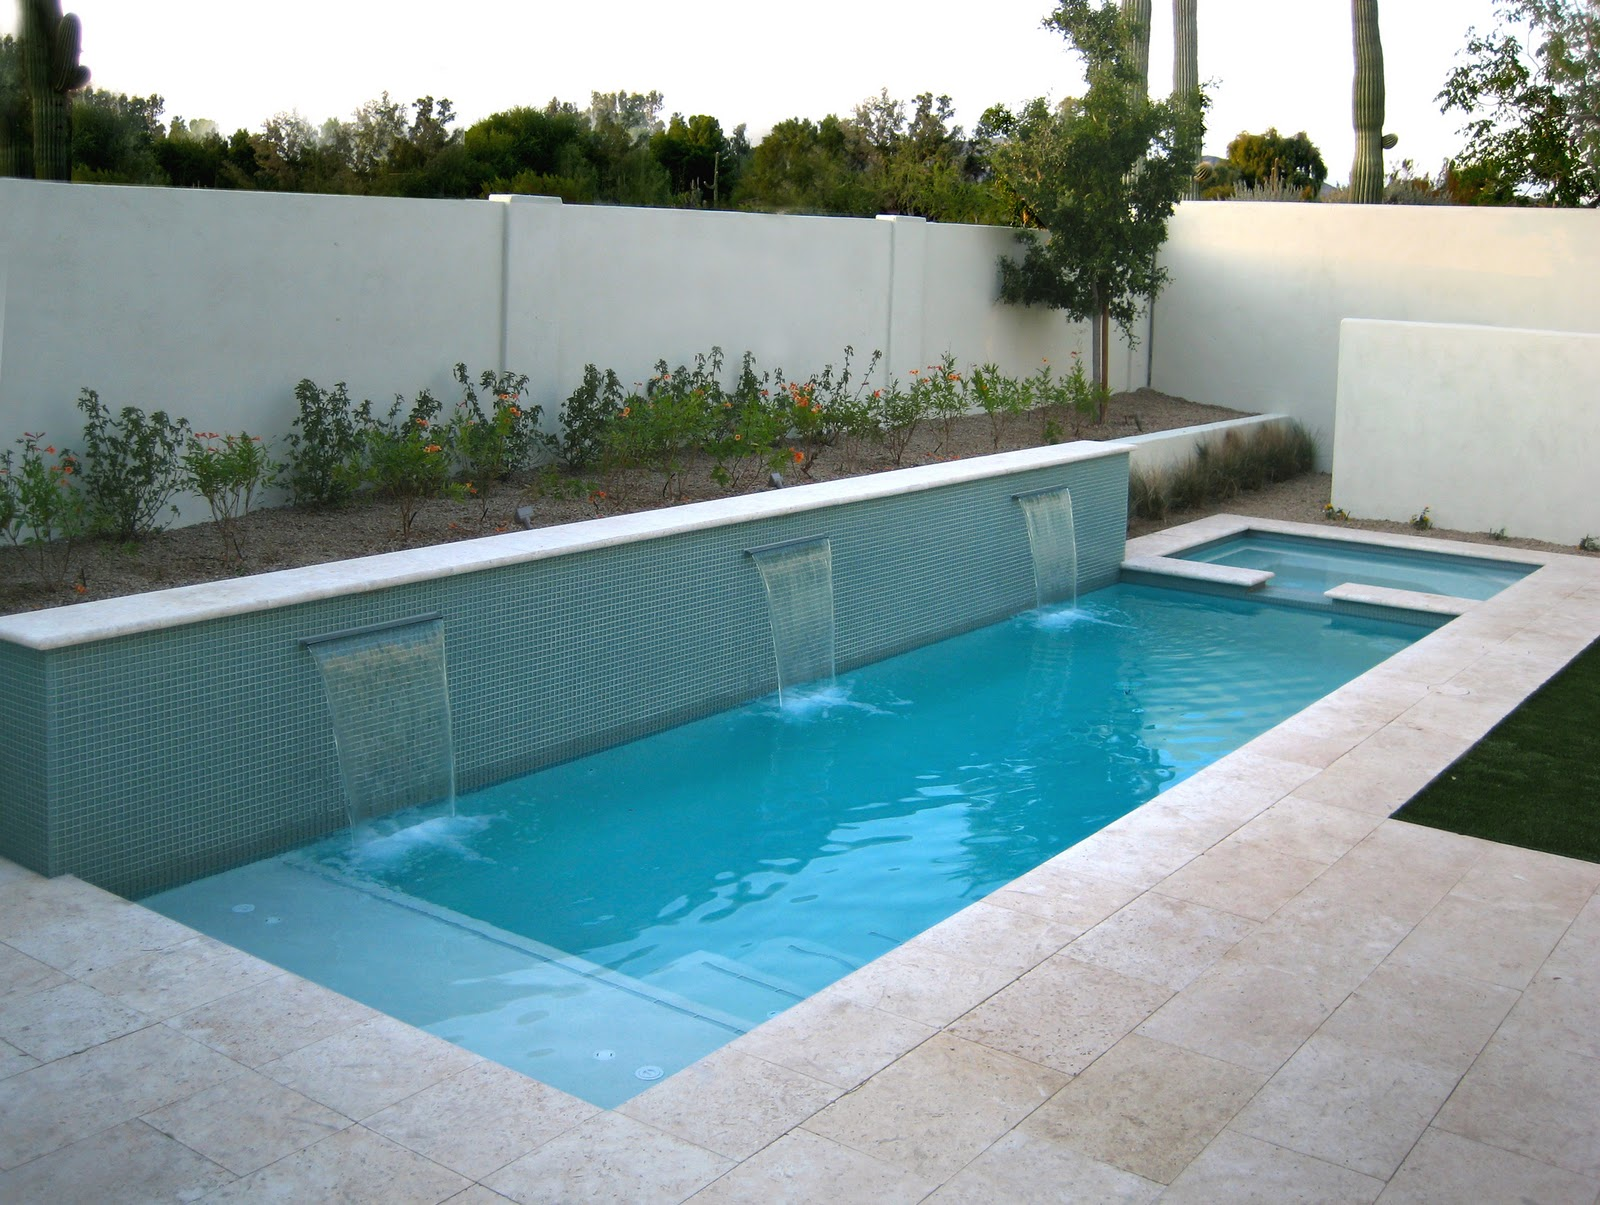 25 fabulous small backyard designs with swimming pool small backyard design pools and small - Swimming pool designs ...